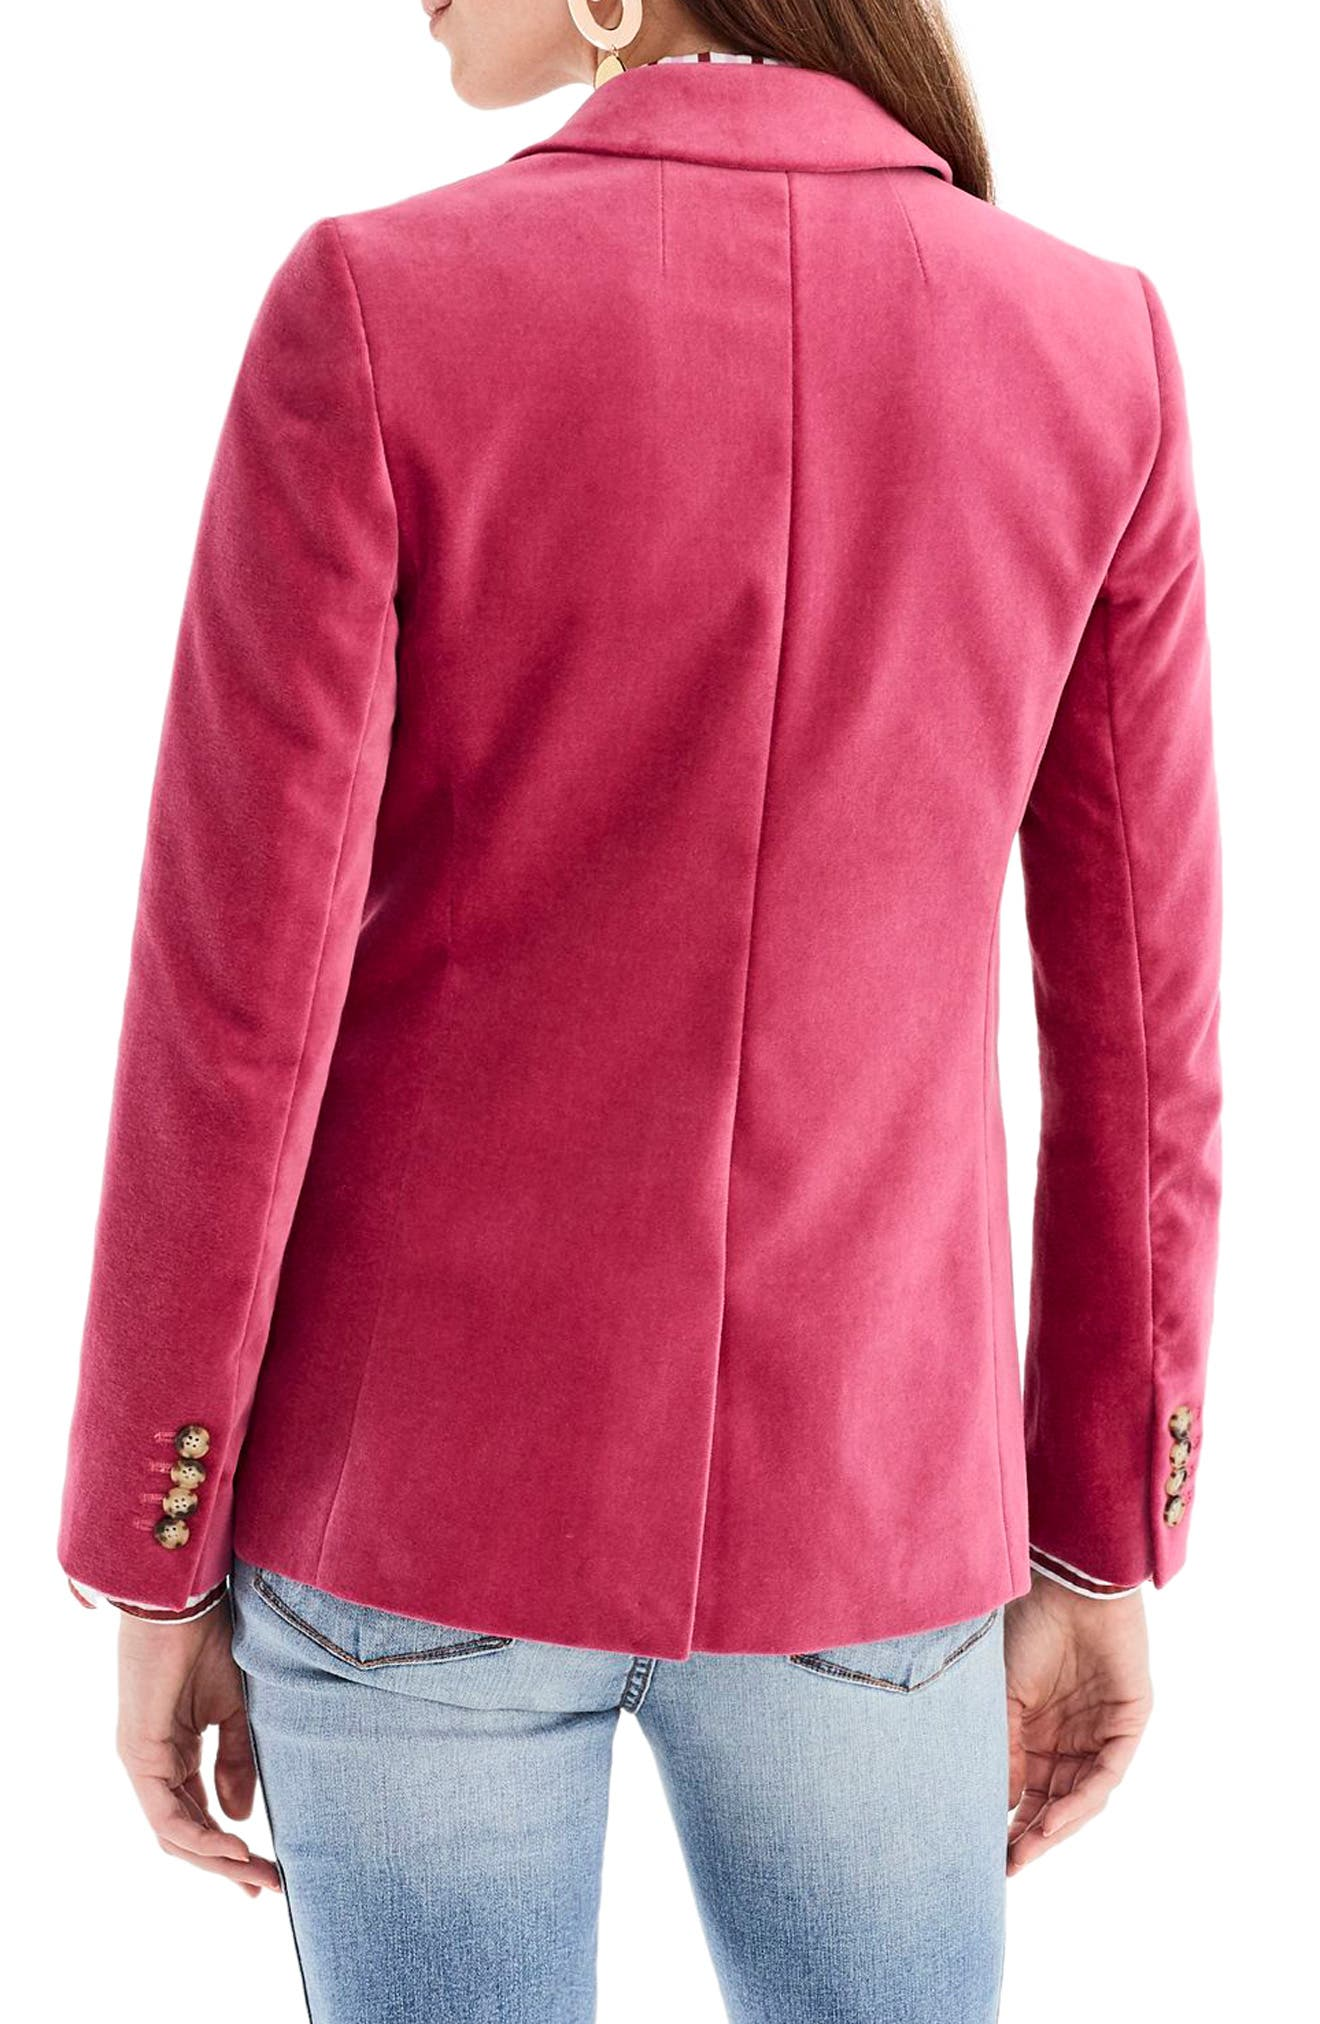 Parke Velvet Blazer,                             Alternate thumbnail 3, color,                             DRIED ROSE